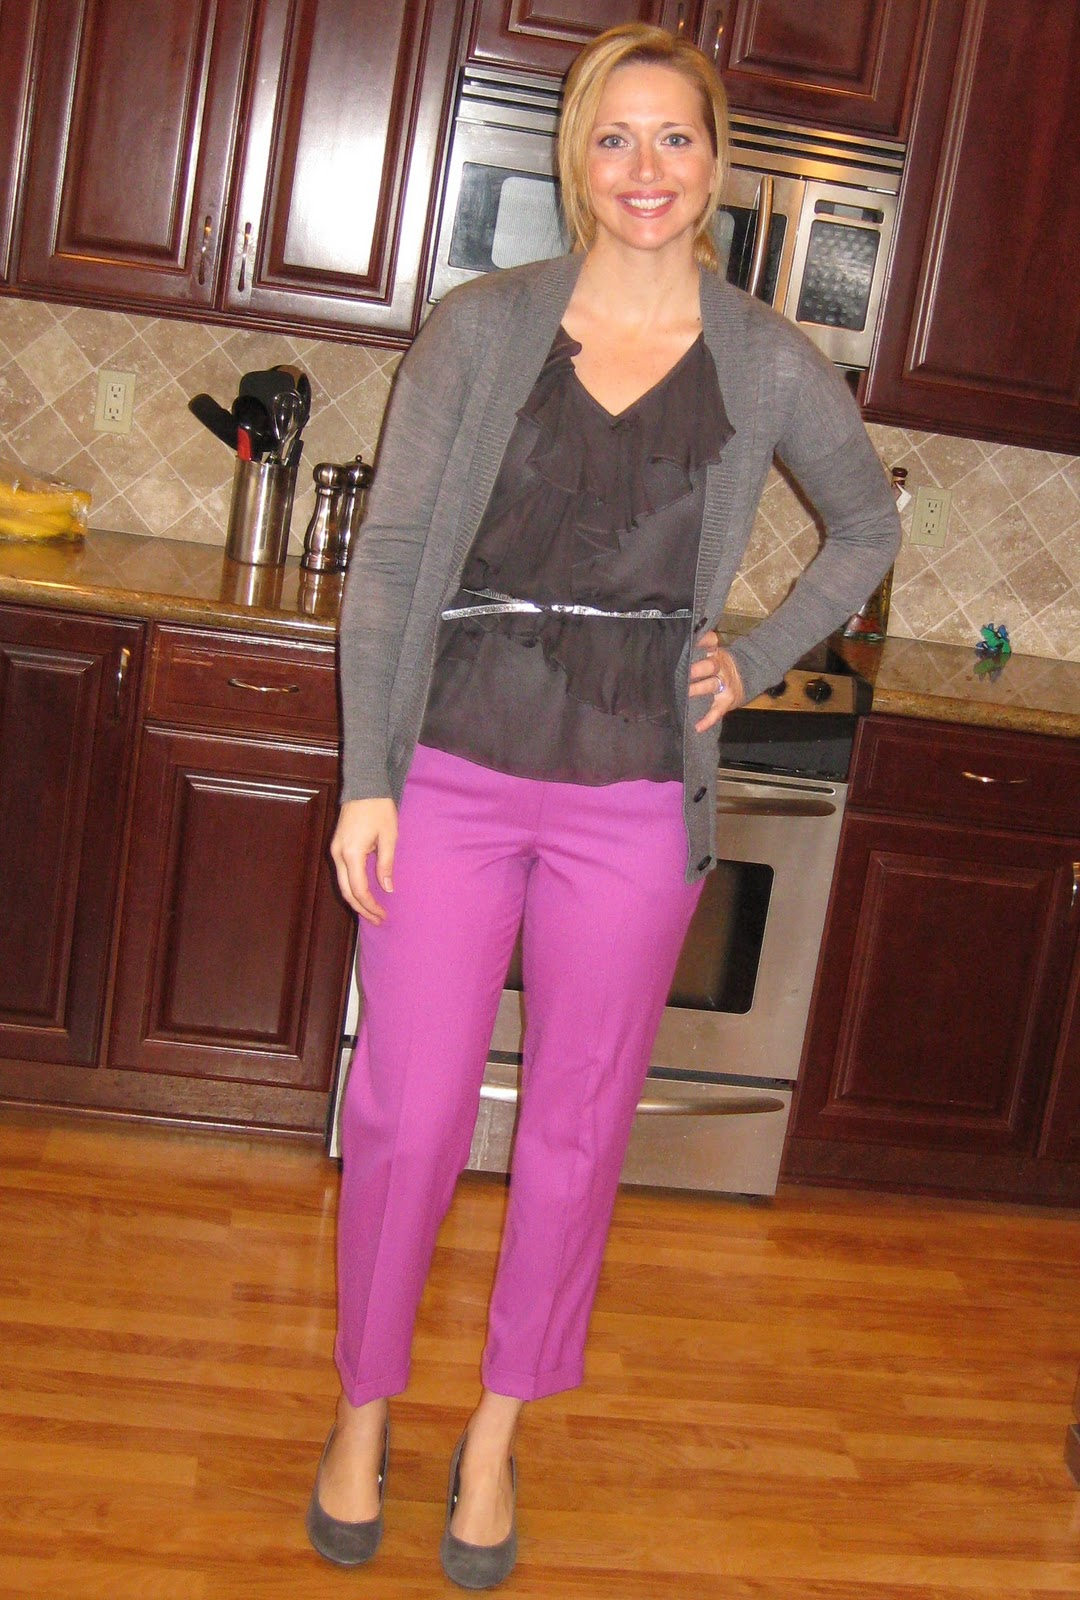 Uncategorized Modestly Styled modestly styled me march 2011 i did try to get some quick ootd shots during my absense here you go